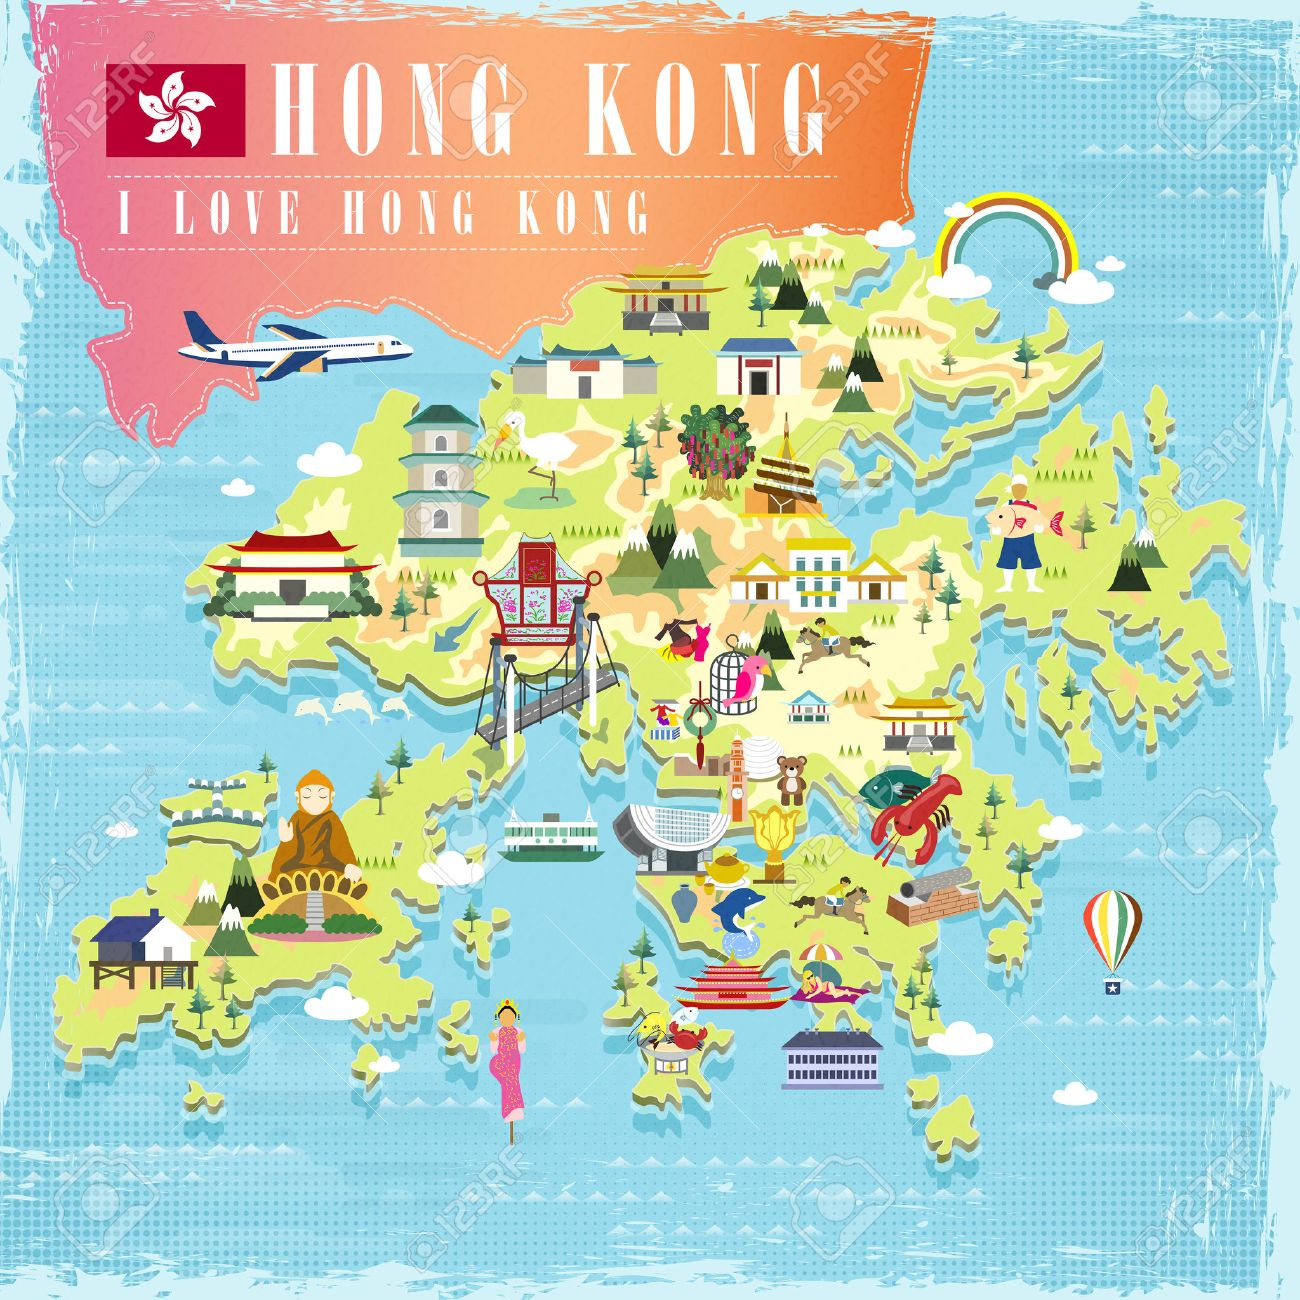 I Love Hong Kong Concept Travel Map With Attractions Icons In